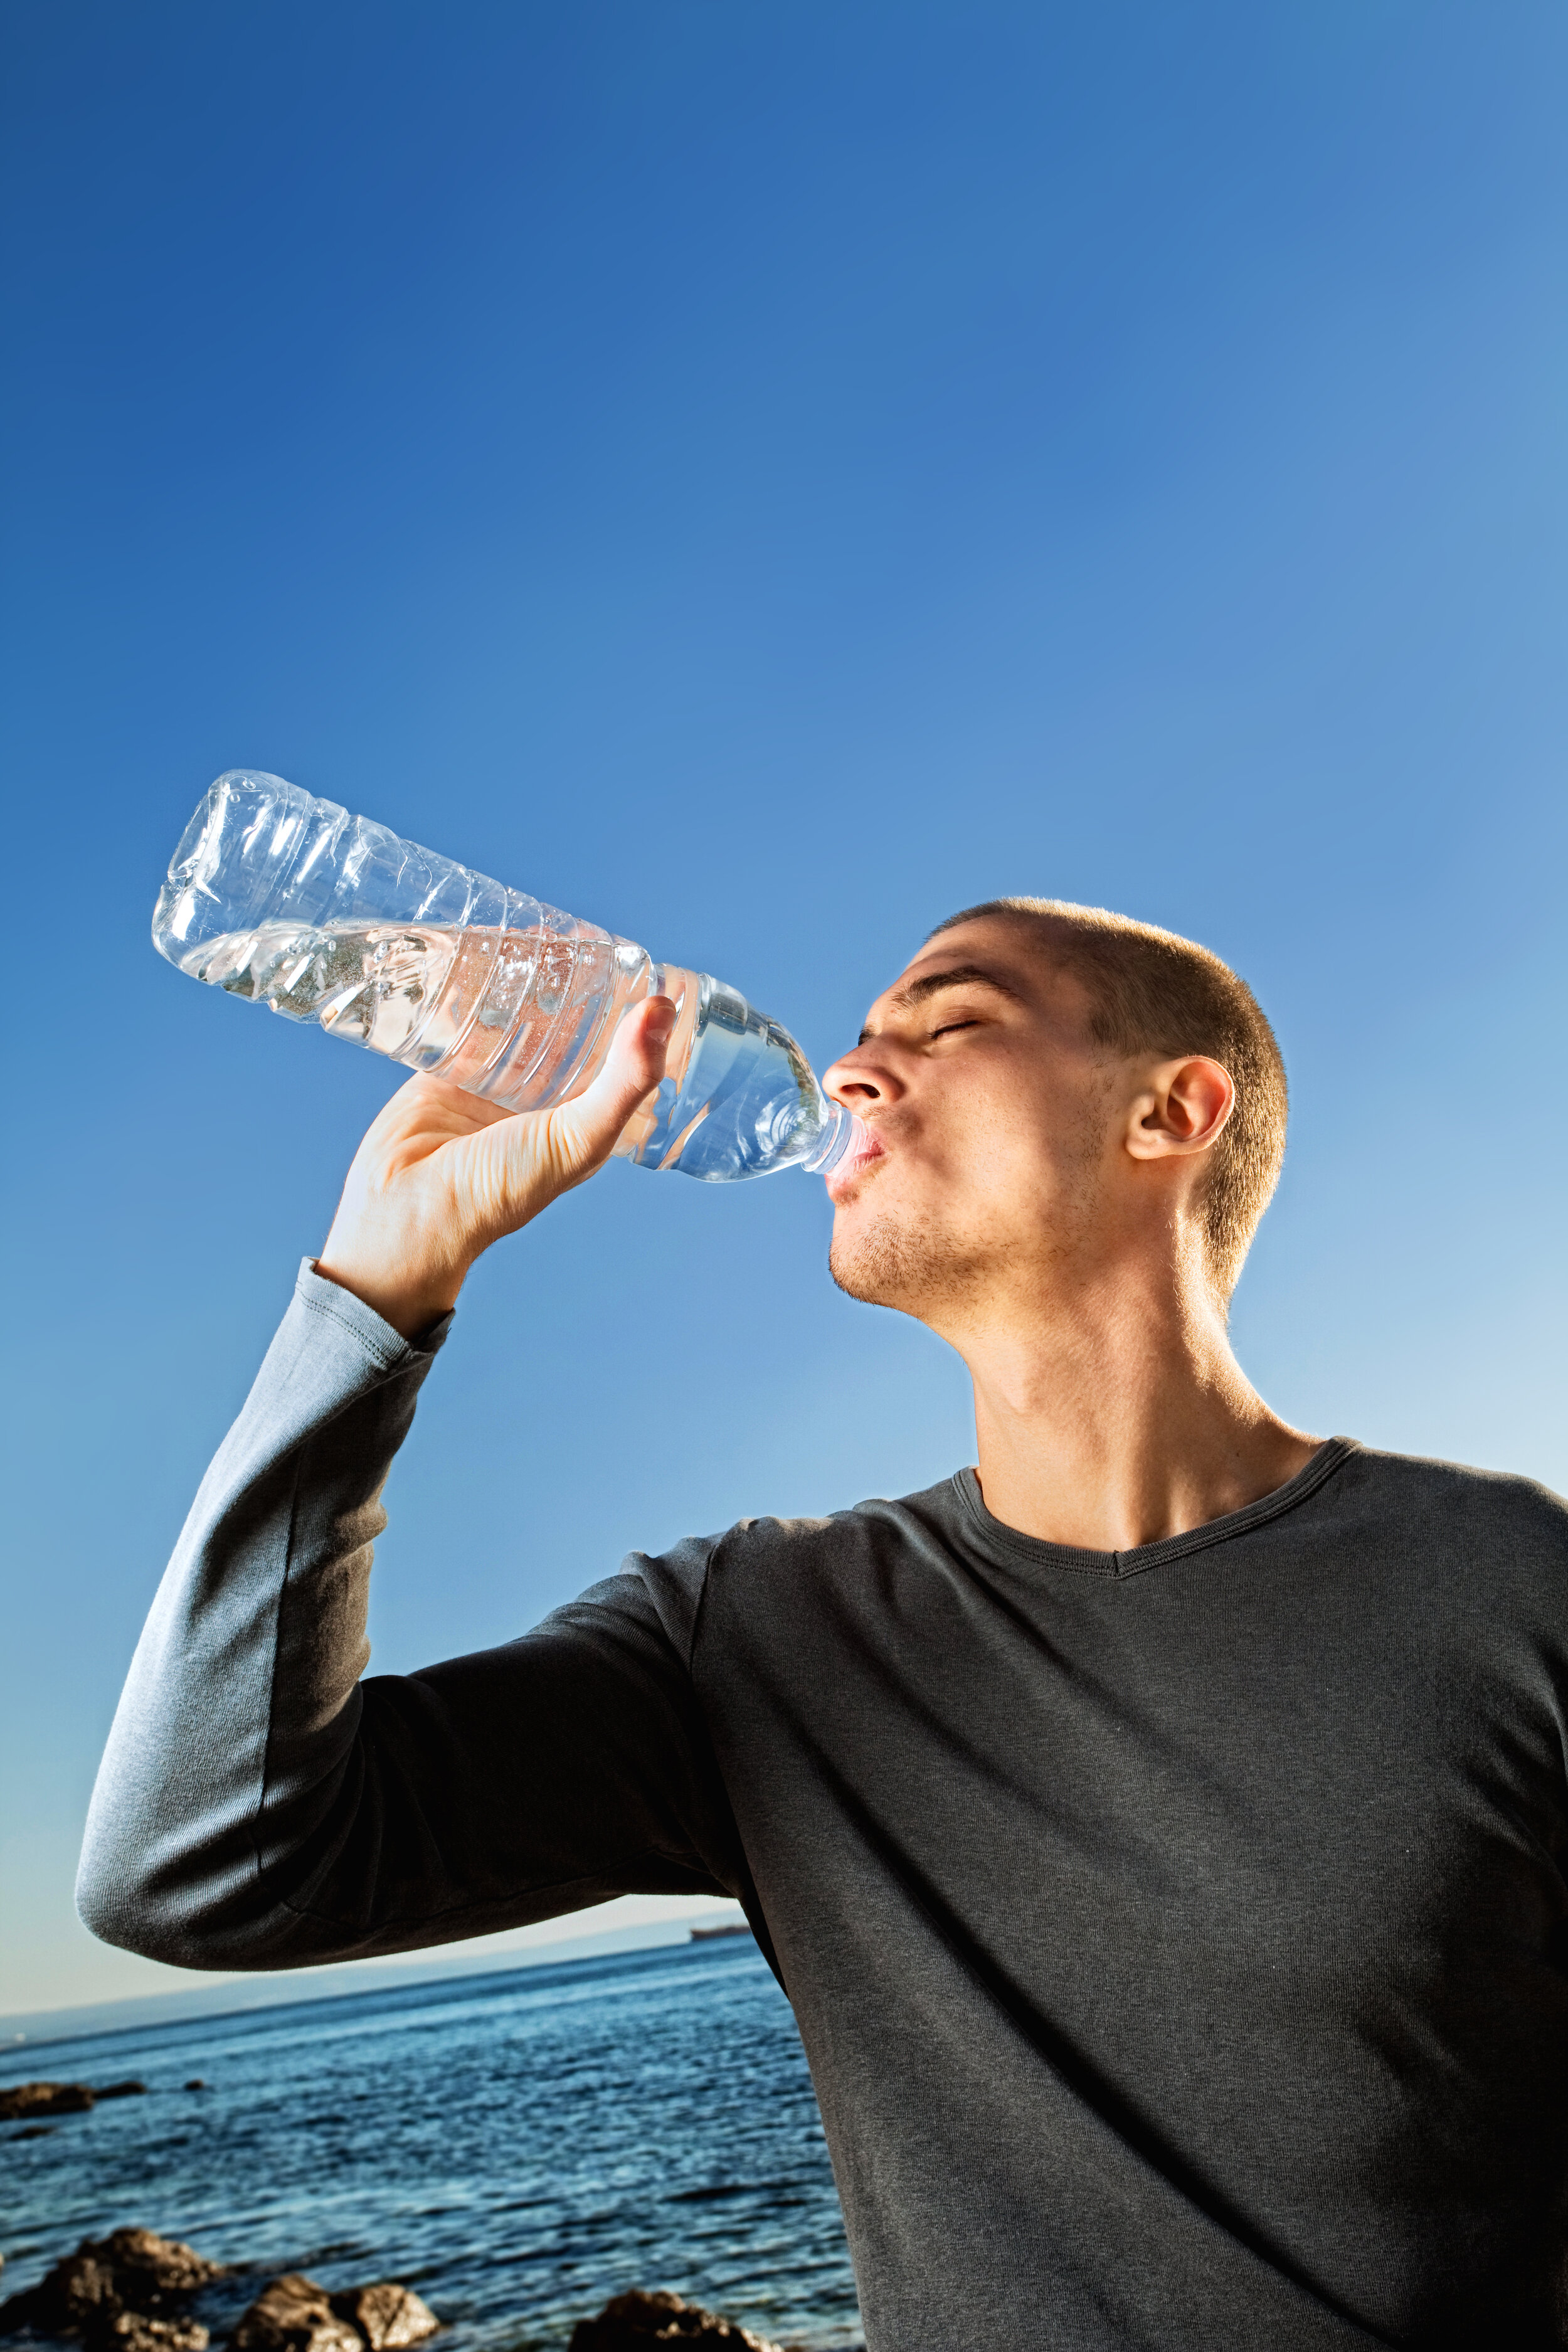 Drink water, Drink lots of water is a great weight loss tip